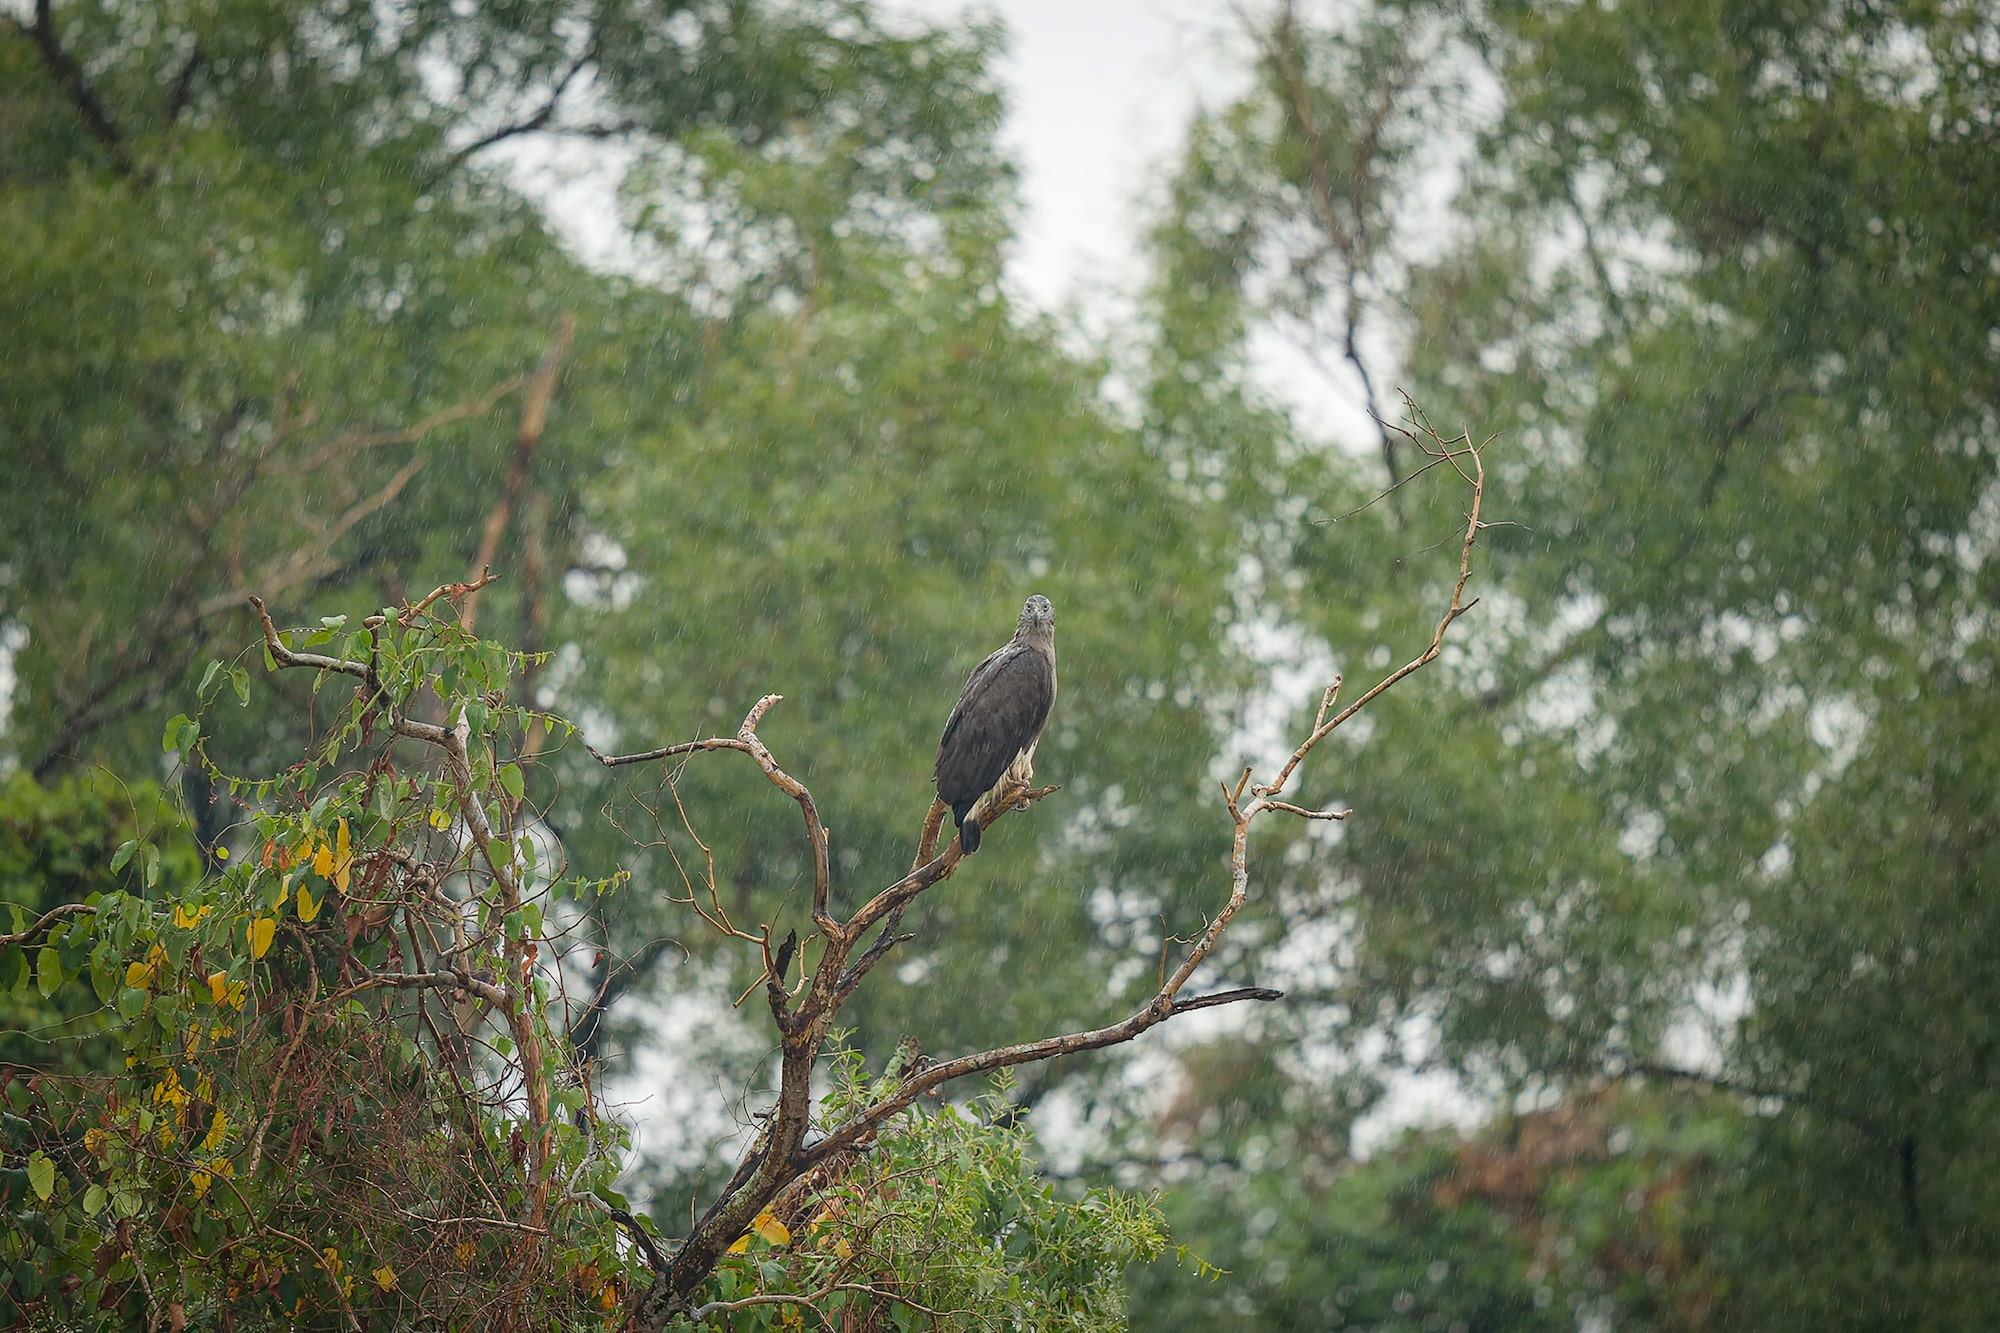 Silent shooting with Sony Alpha 7R IV leaves Grey-Headed Fish Eagle undisturbed in rain. Perfect for bird photography.